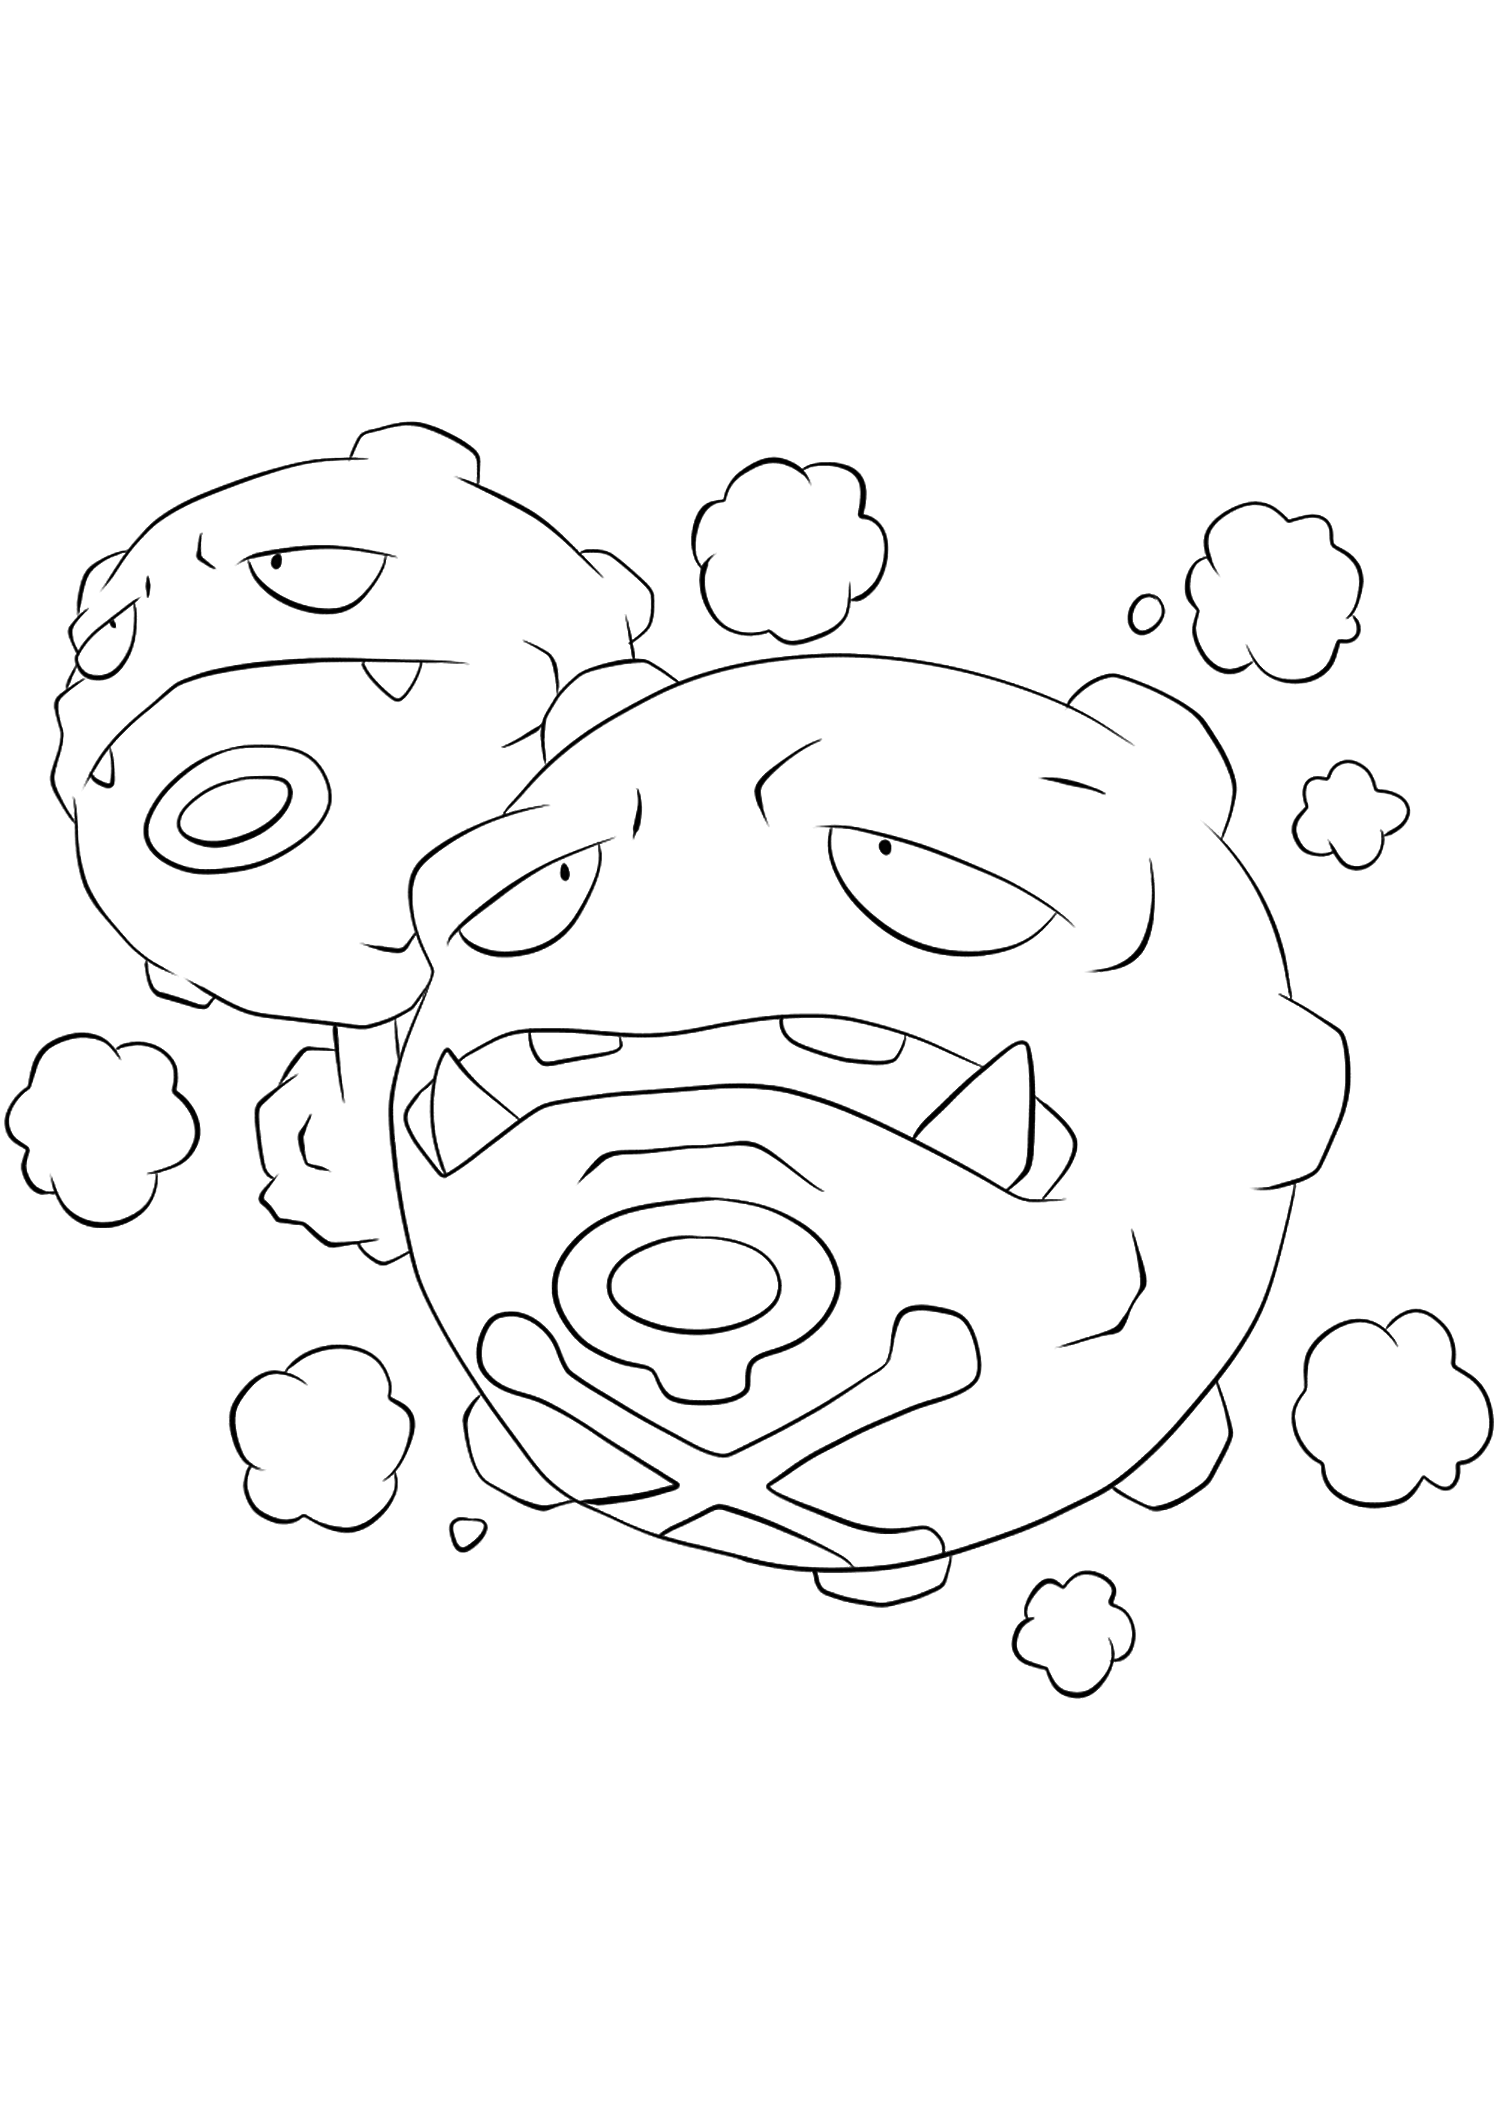 weezing pokemon coloring page weezing coloring pages for kids weezing pokemon page coloring